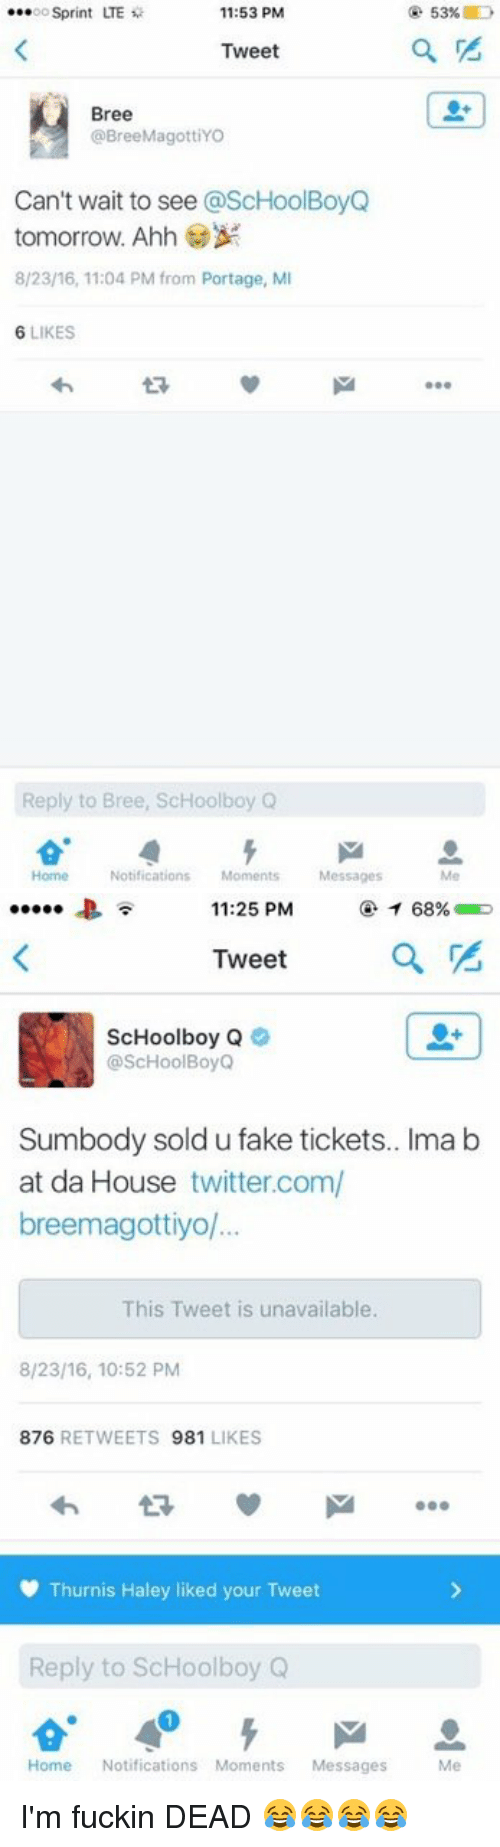 ScHoolboy Q: 11:53 PM  ...oo Sprint LTE  Tweet  Bree  @BreeMagottiYO  Can't wait to see  @ScHoolBoyQ  tomorrow. Ahh  8/2316, 11:04 PM from Portage, MI  6 LIKES  Reply to Bree, ScHoolboy Q  Home Notifications  Moments Messages  53%   68%  11:25 PM  Tweet  ScHoolboy Q  @ScHoolBoyQ  Sumbody sold ufake tickets.. Ima b  at da House twitter.com/  breemagottiyol...  This Tweet is unavailable.  8/23/16, 10:52 PM  876  RETWEETS  981  LIKES  Thurnis Haley liked your Tweet  Reply to ScHoolboy Q  Home Notifications Moments Messages  Me I'm fuckin DEAD 😂😂😂😂